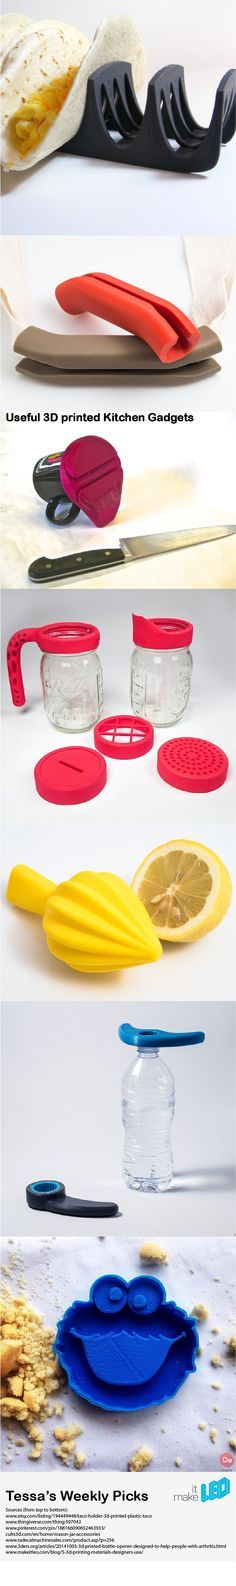 www.bestofthekitchen.com - Explore lots of other wonderful tips to go in the kitchen! 3d Printer Designs, 3d Printer Projects, 3d Projects, 3d Design, Print Design, Useful 3d Prints, 3d Templates, 3d Printed Objects, 3d Printed Stuff